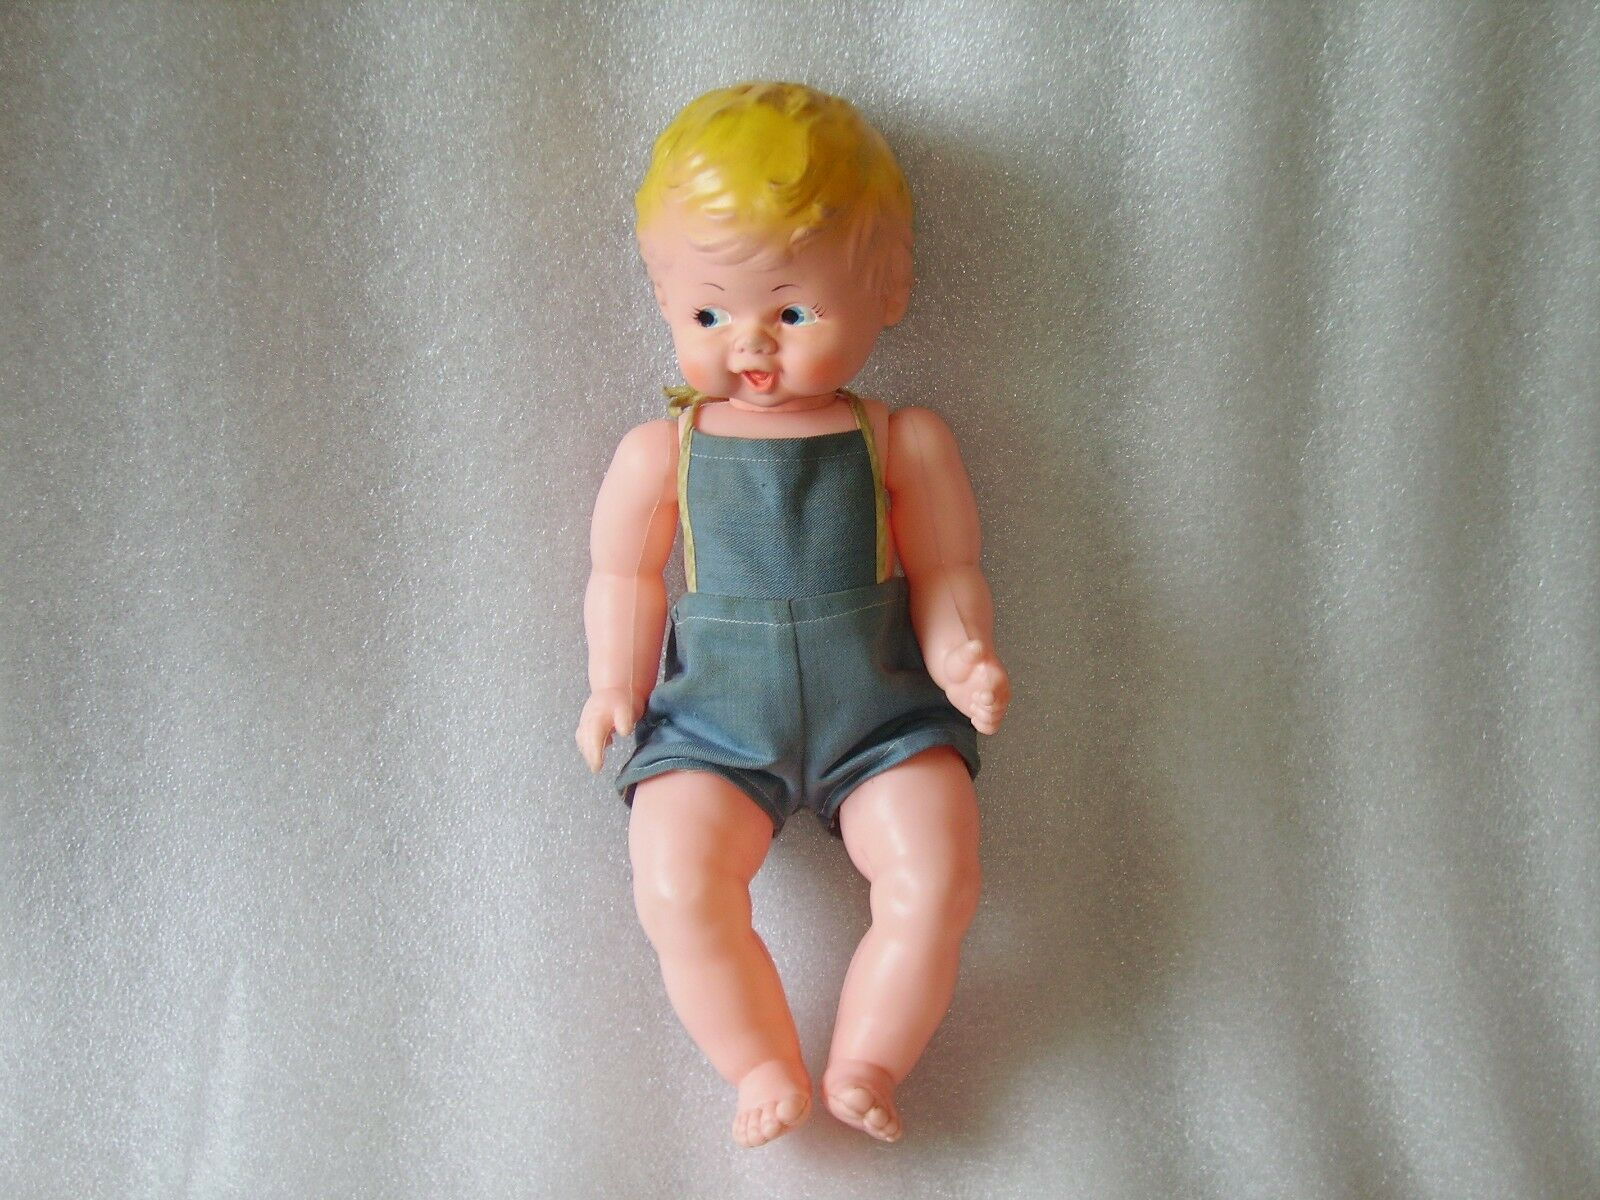 VINTAGE CUTE PLASTIC AND RUBBER BABY DOLL